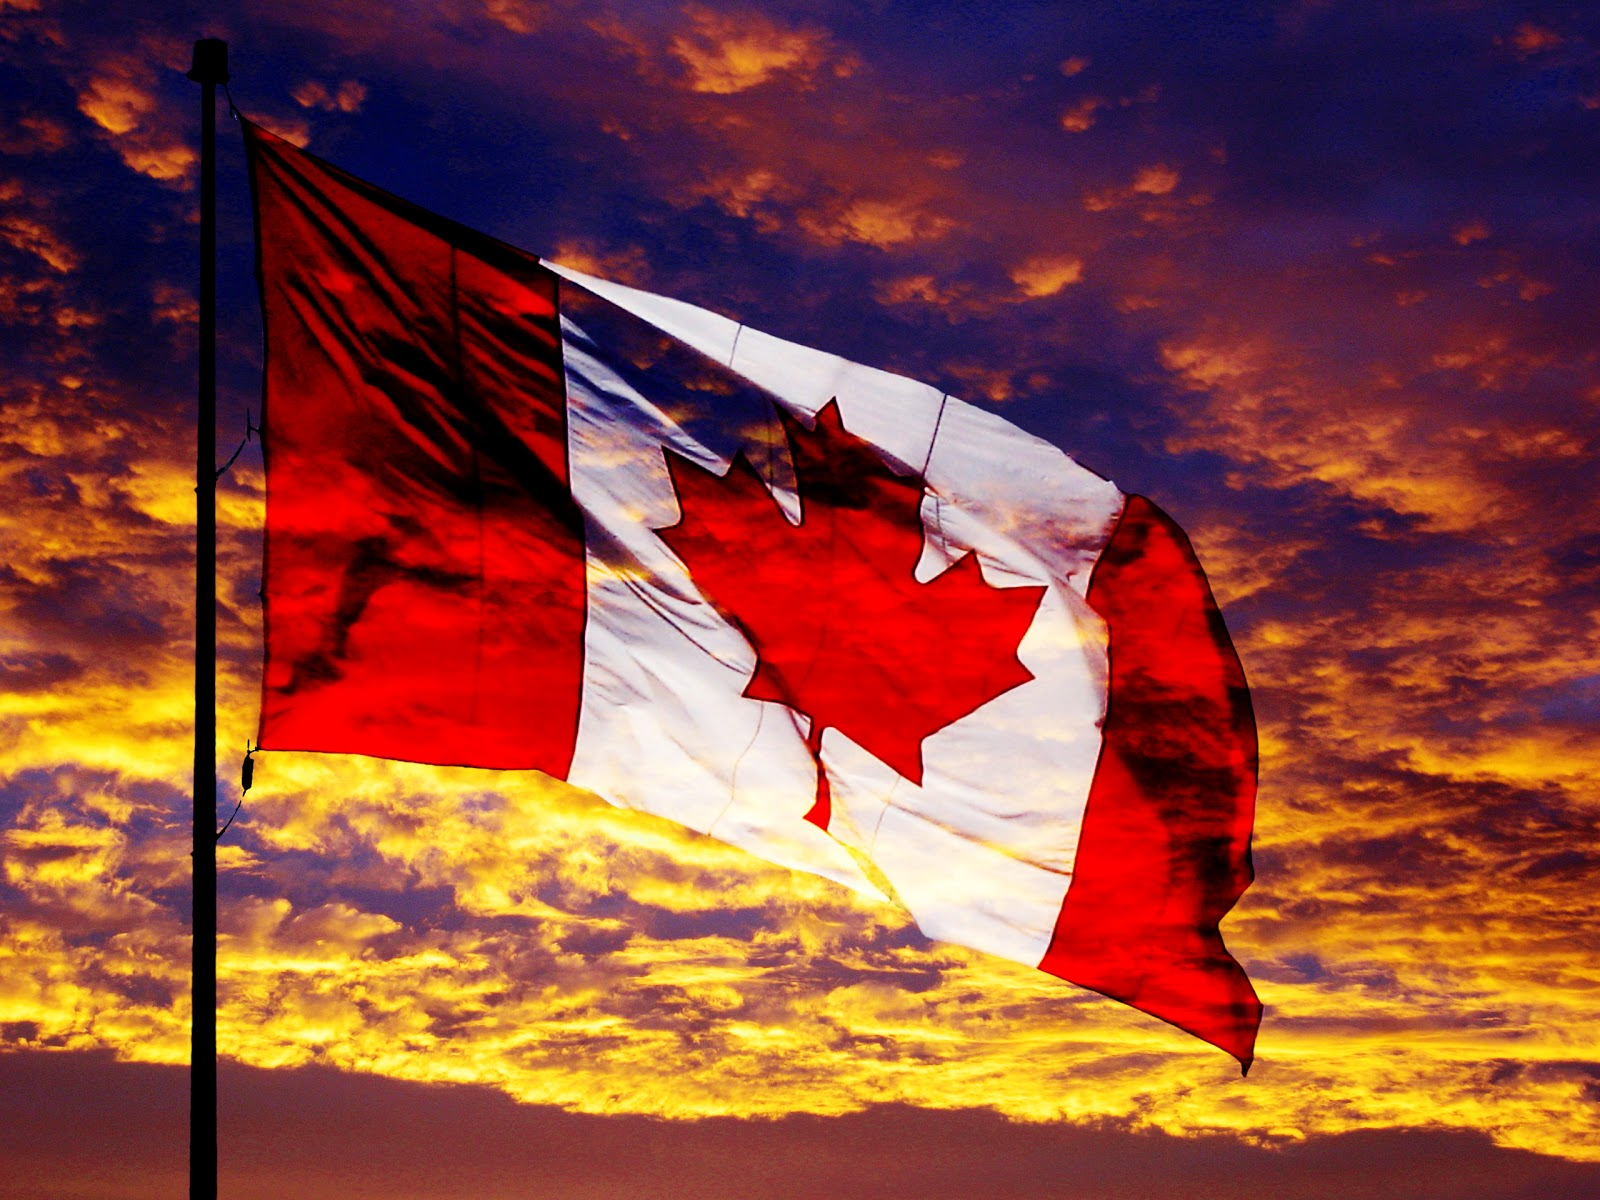 Central Wallpaper Awesome Canada Flag Designs HD Wallpapers 1600x1200